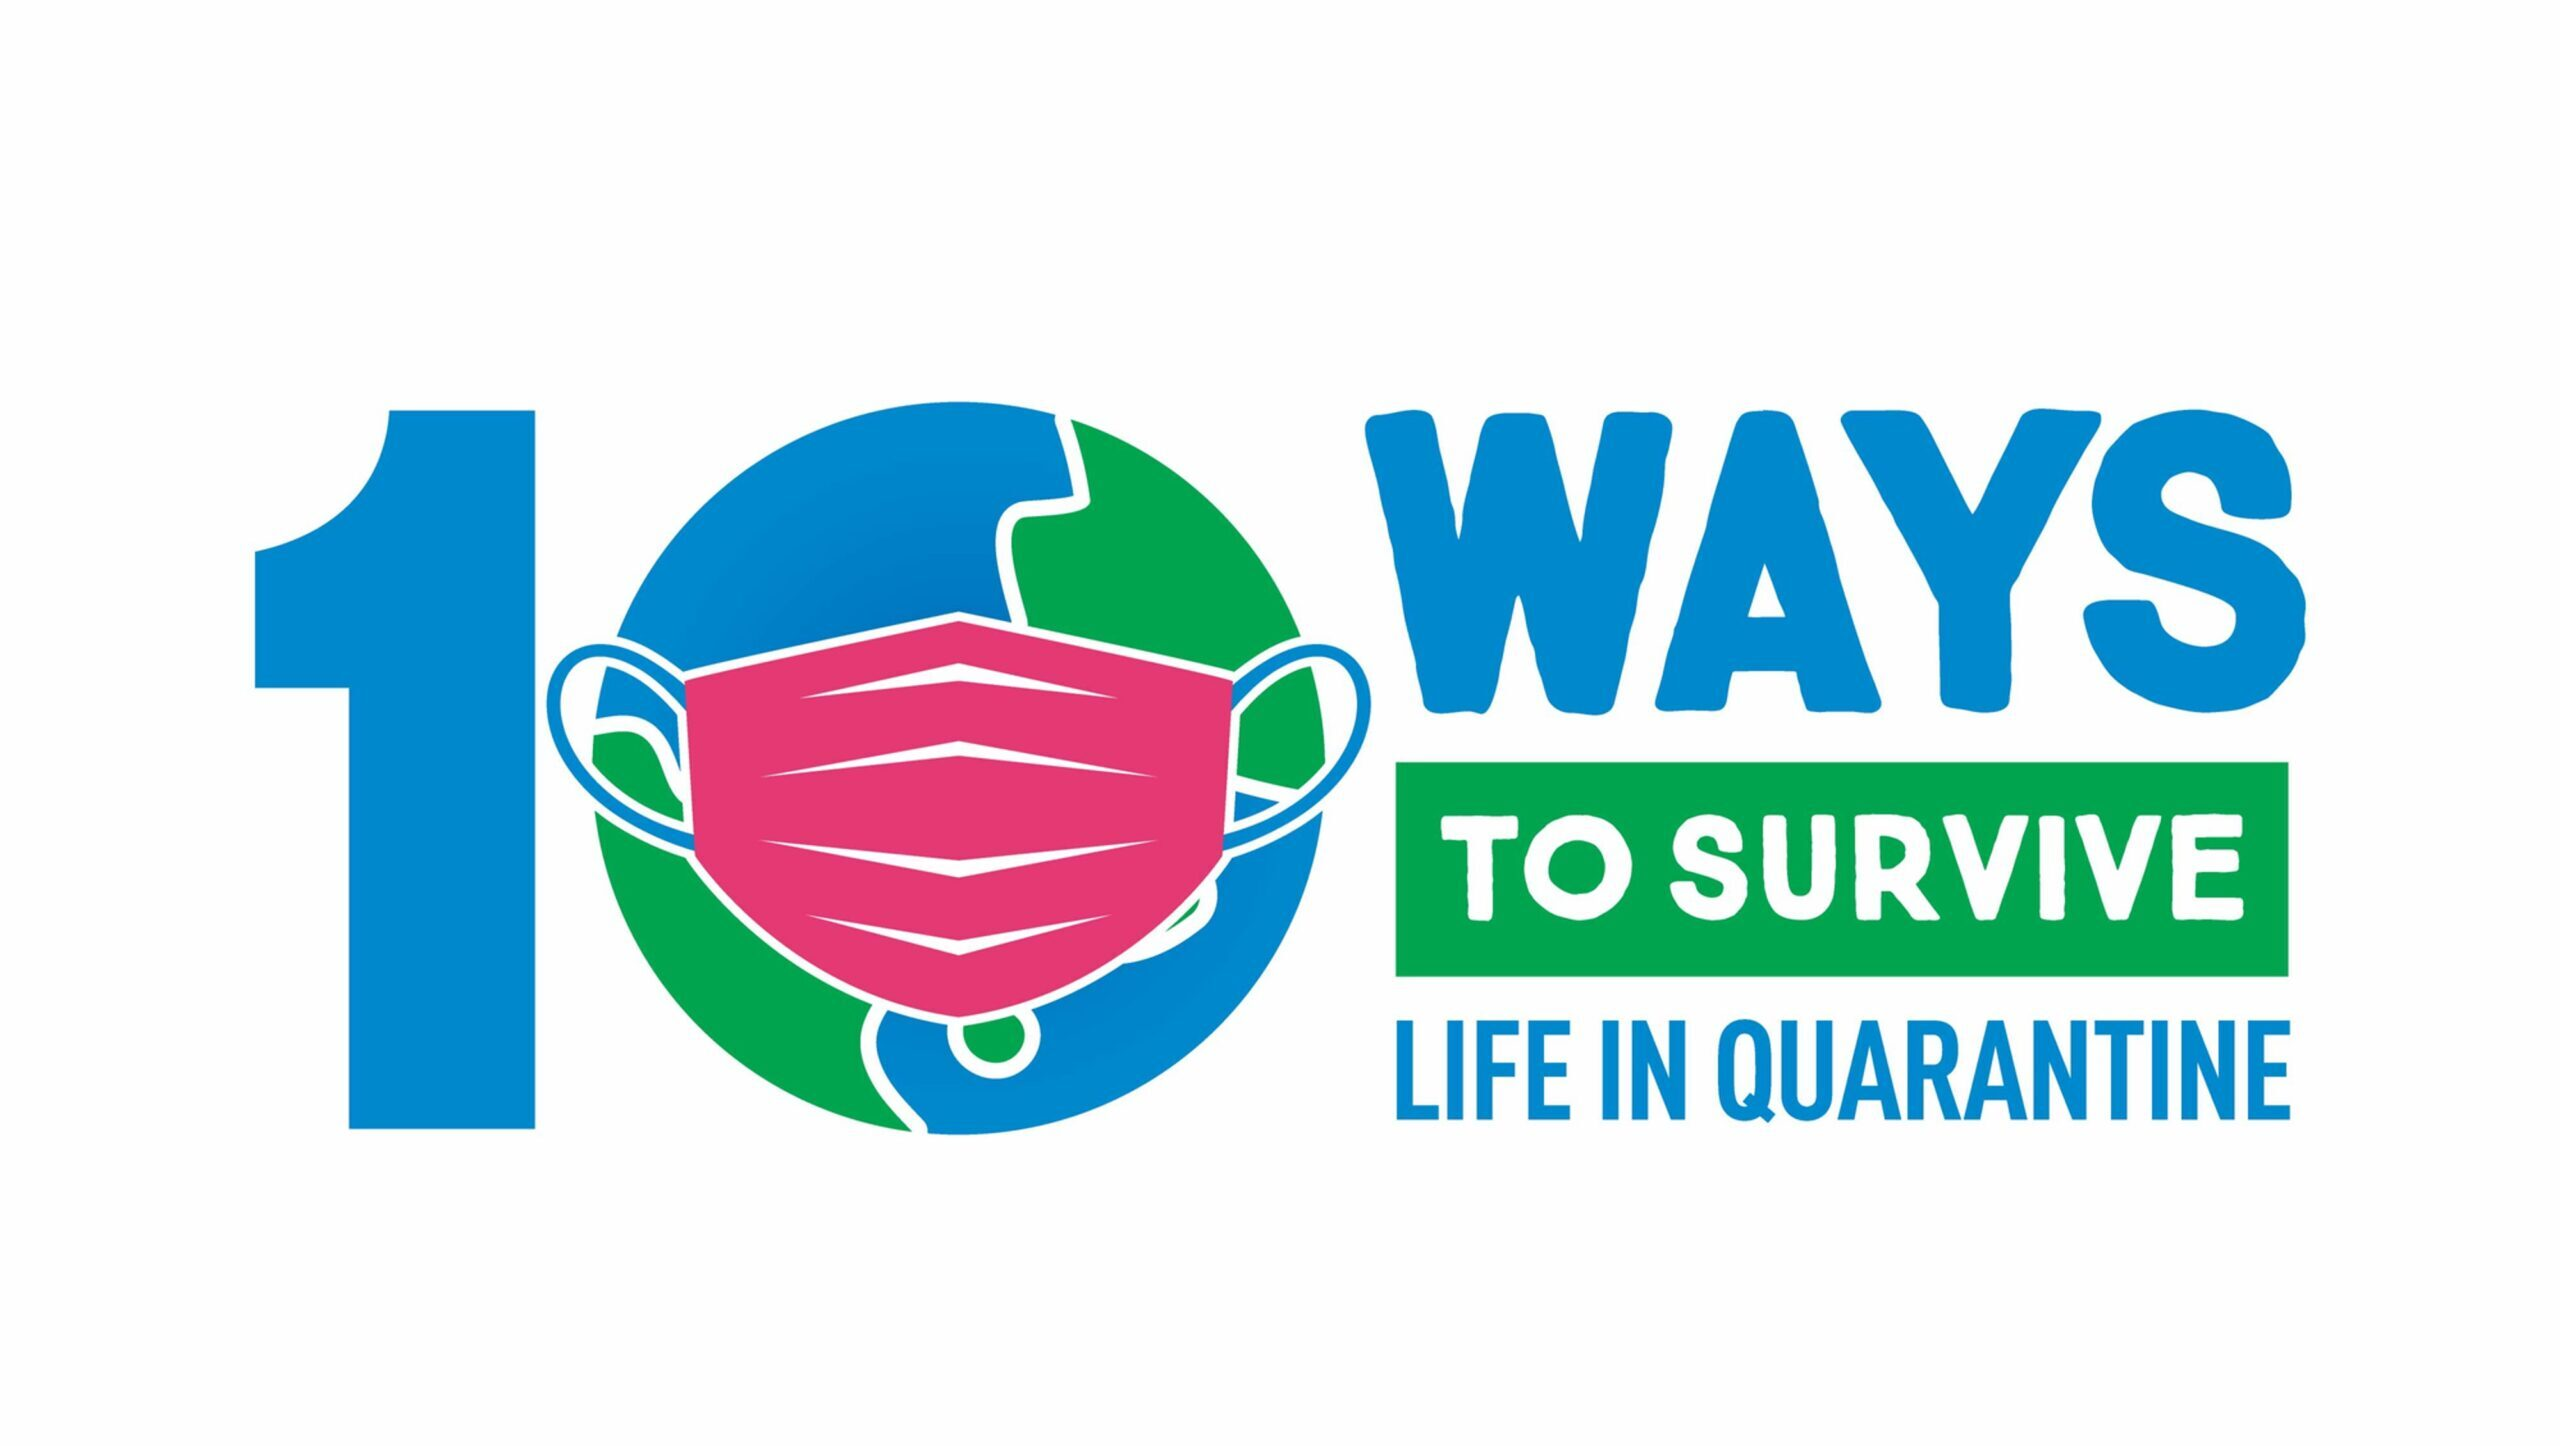 10 ways to survive life in quarantine